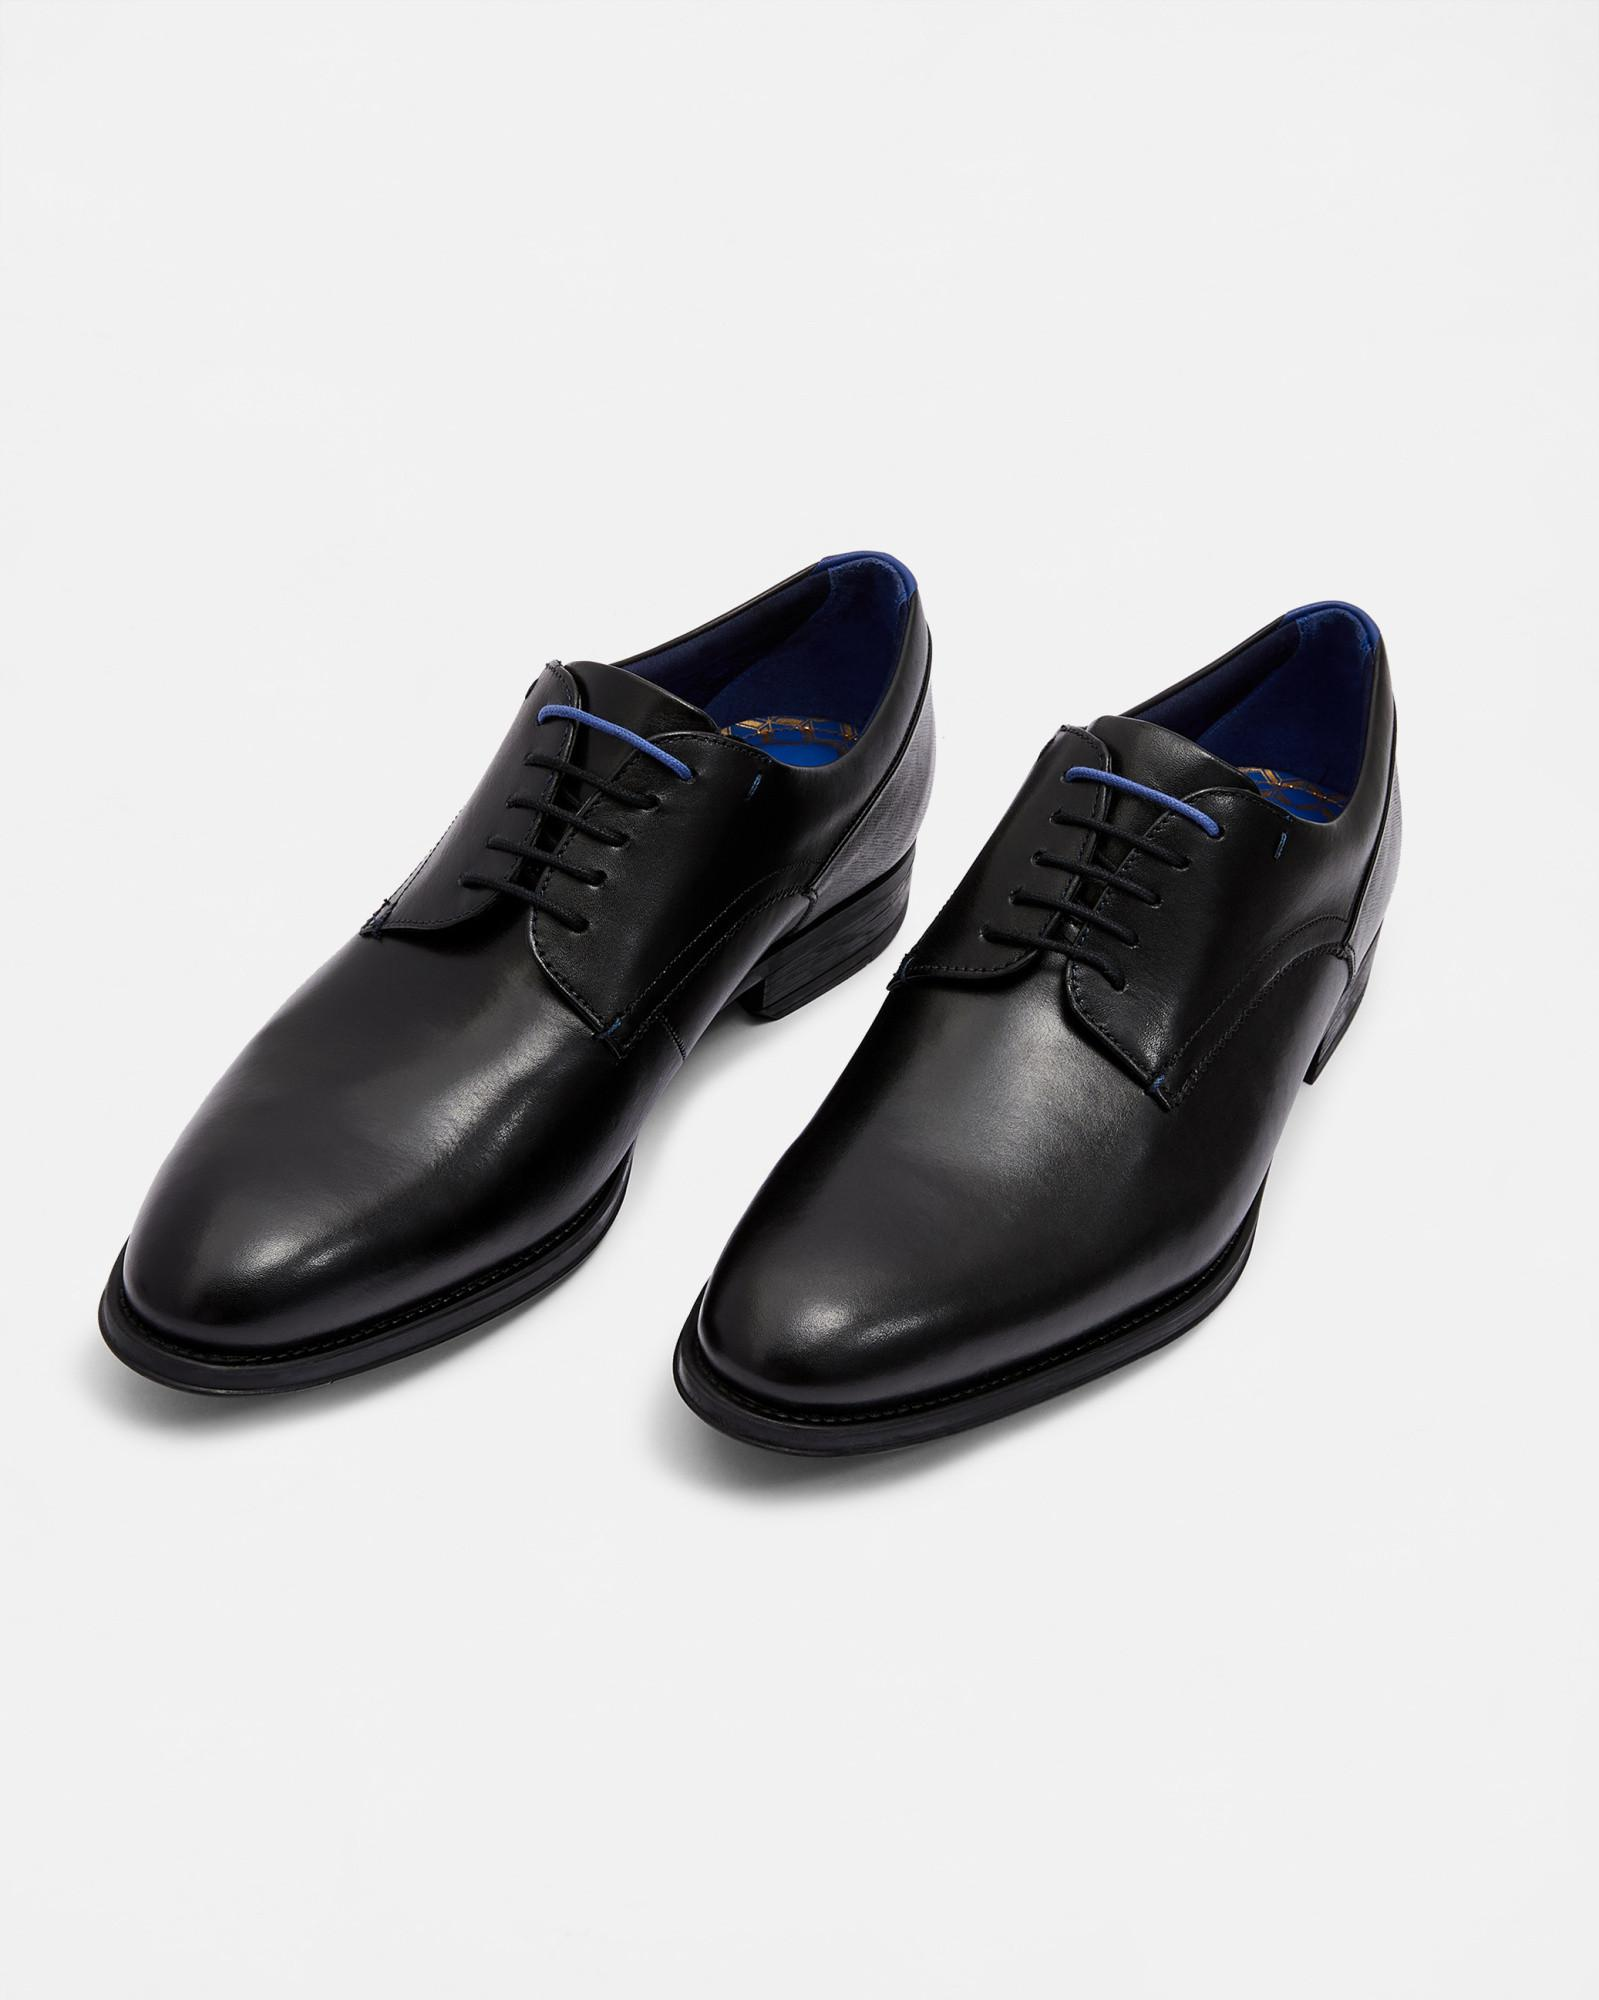 2bd104483f3b77 Lyst - Ted Baker Leather Derby Shoes in Black for Men